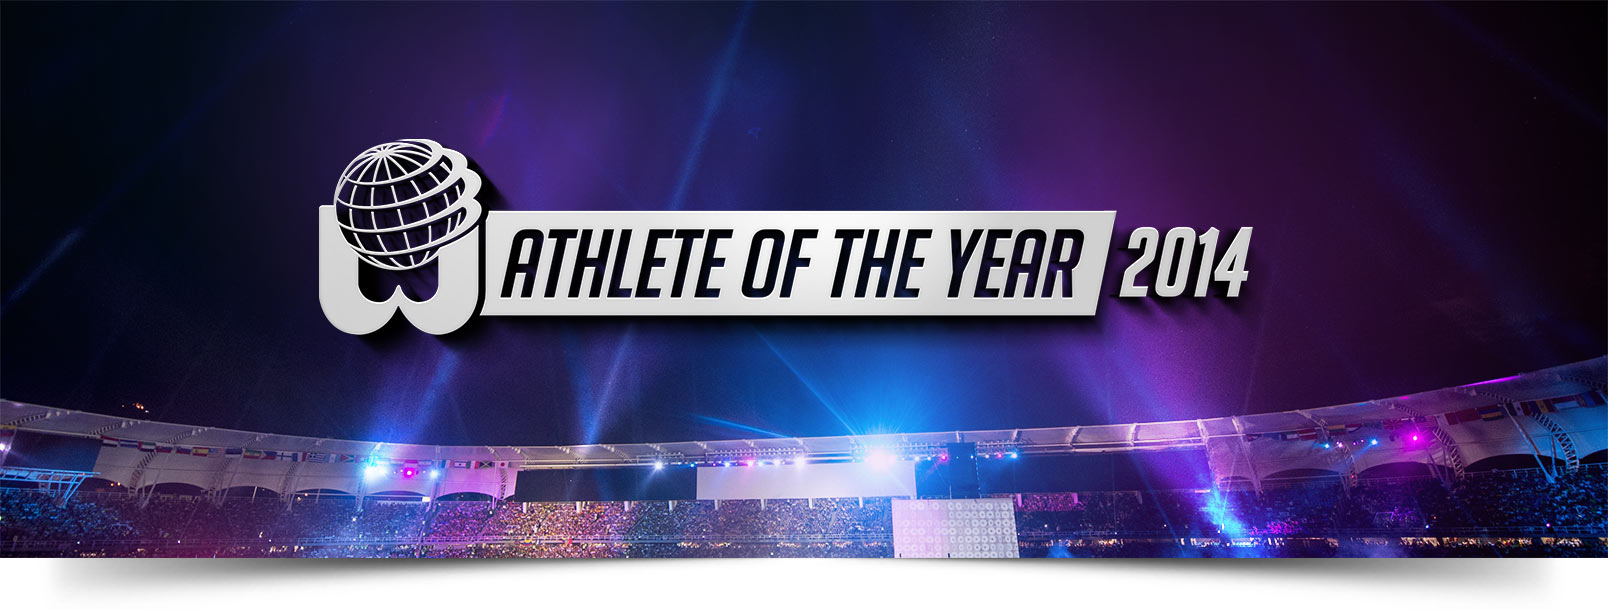 Athlete of the year 2014 vote banner